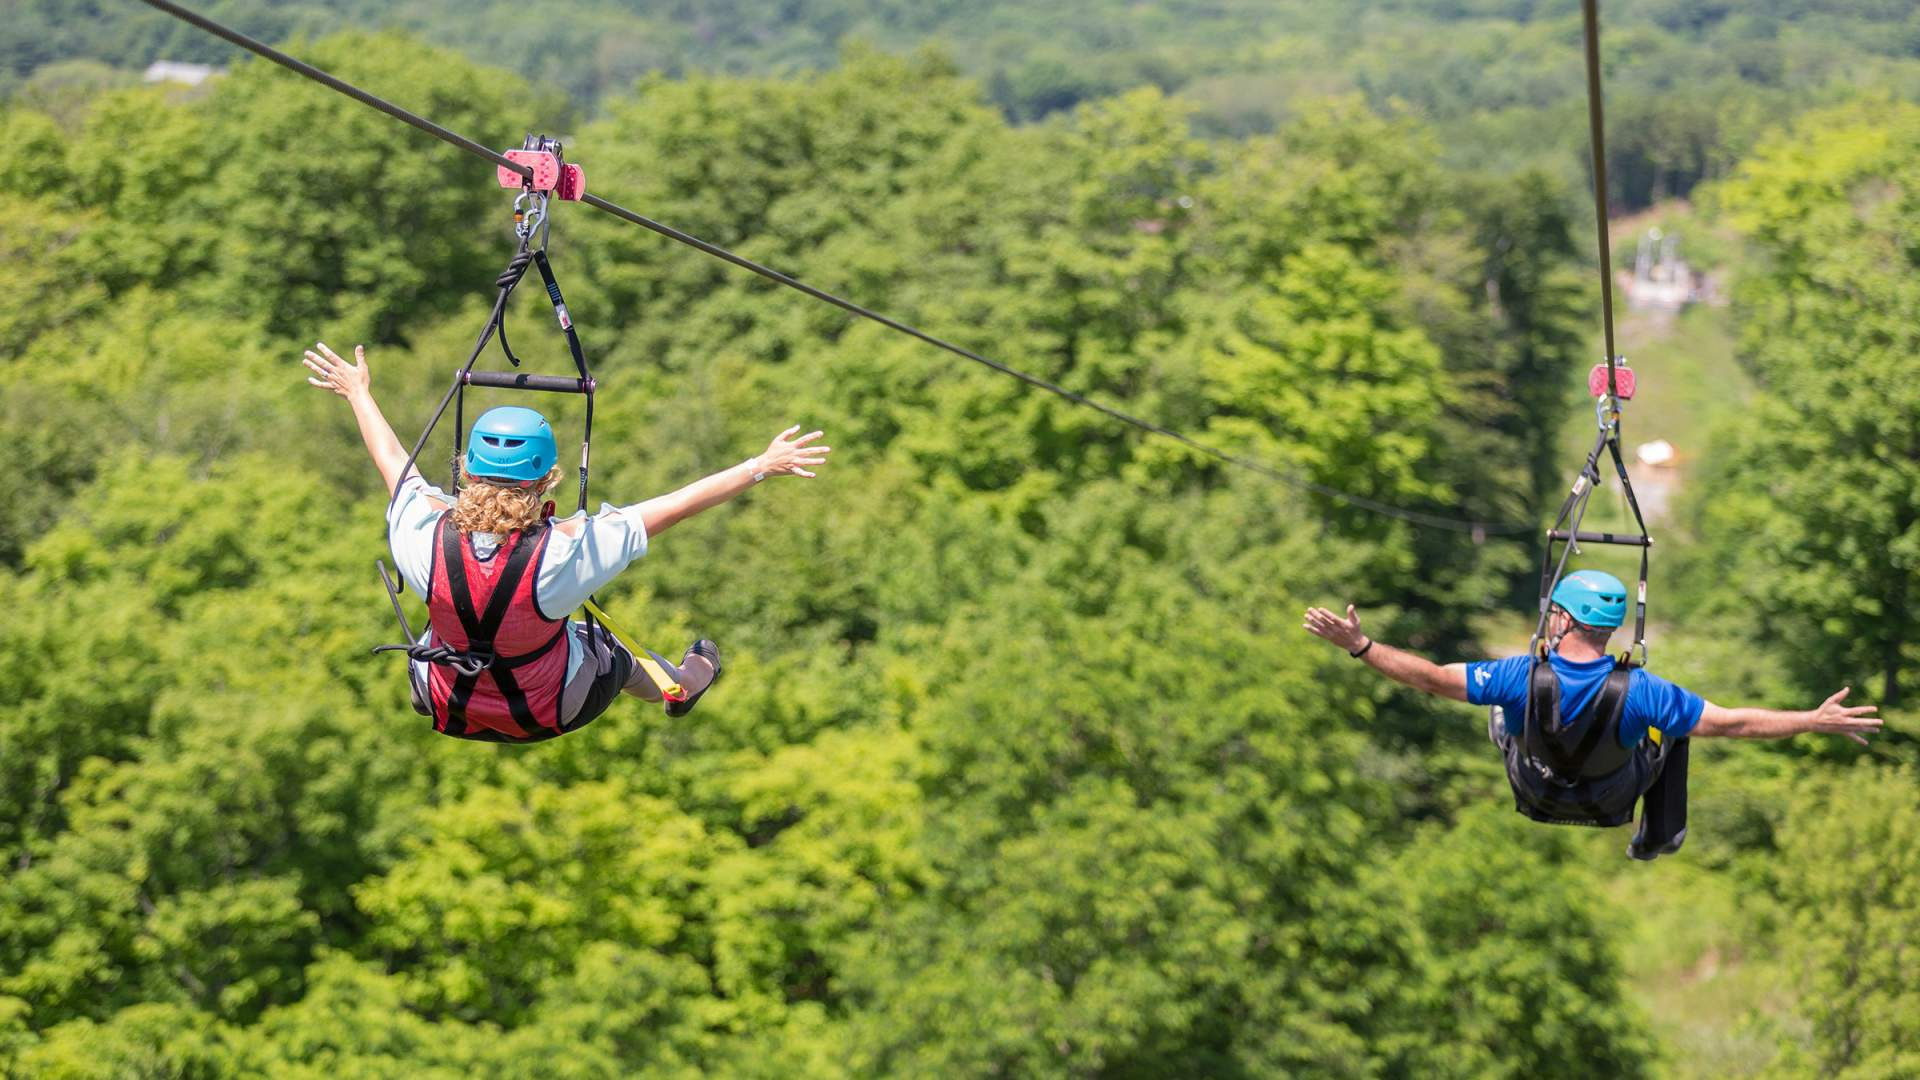 two people gliding at the same time